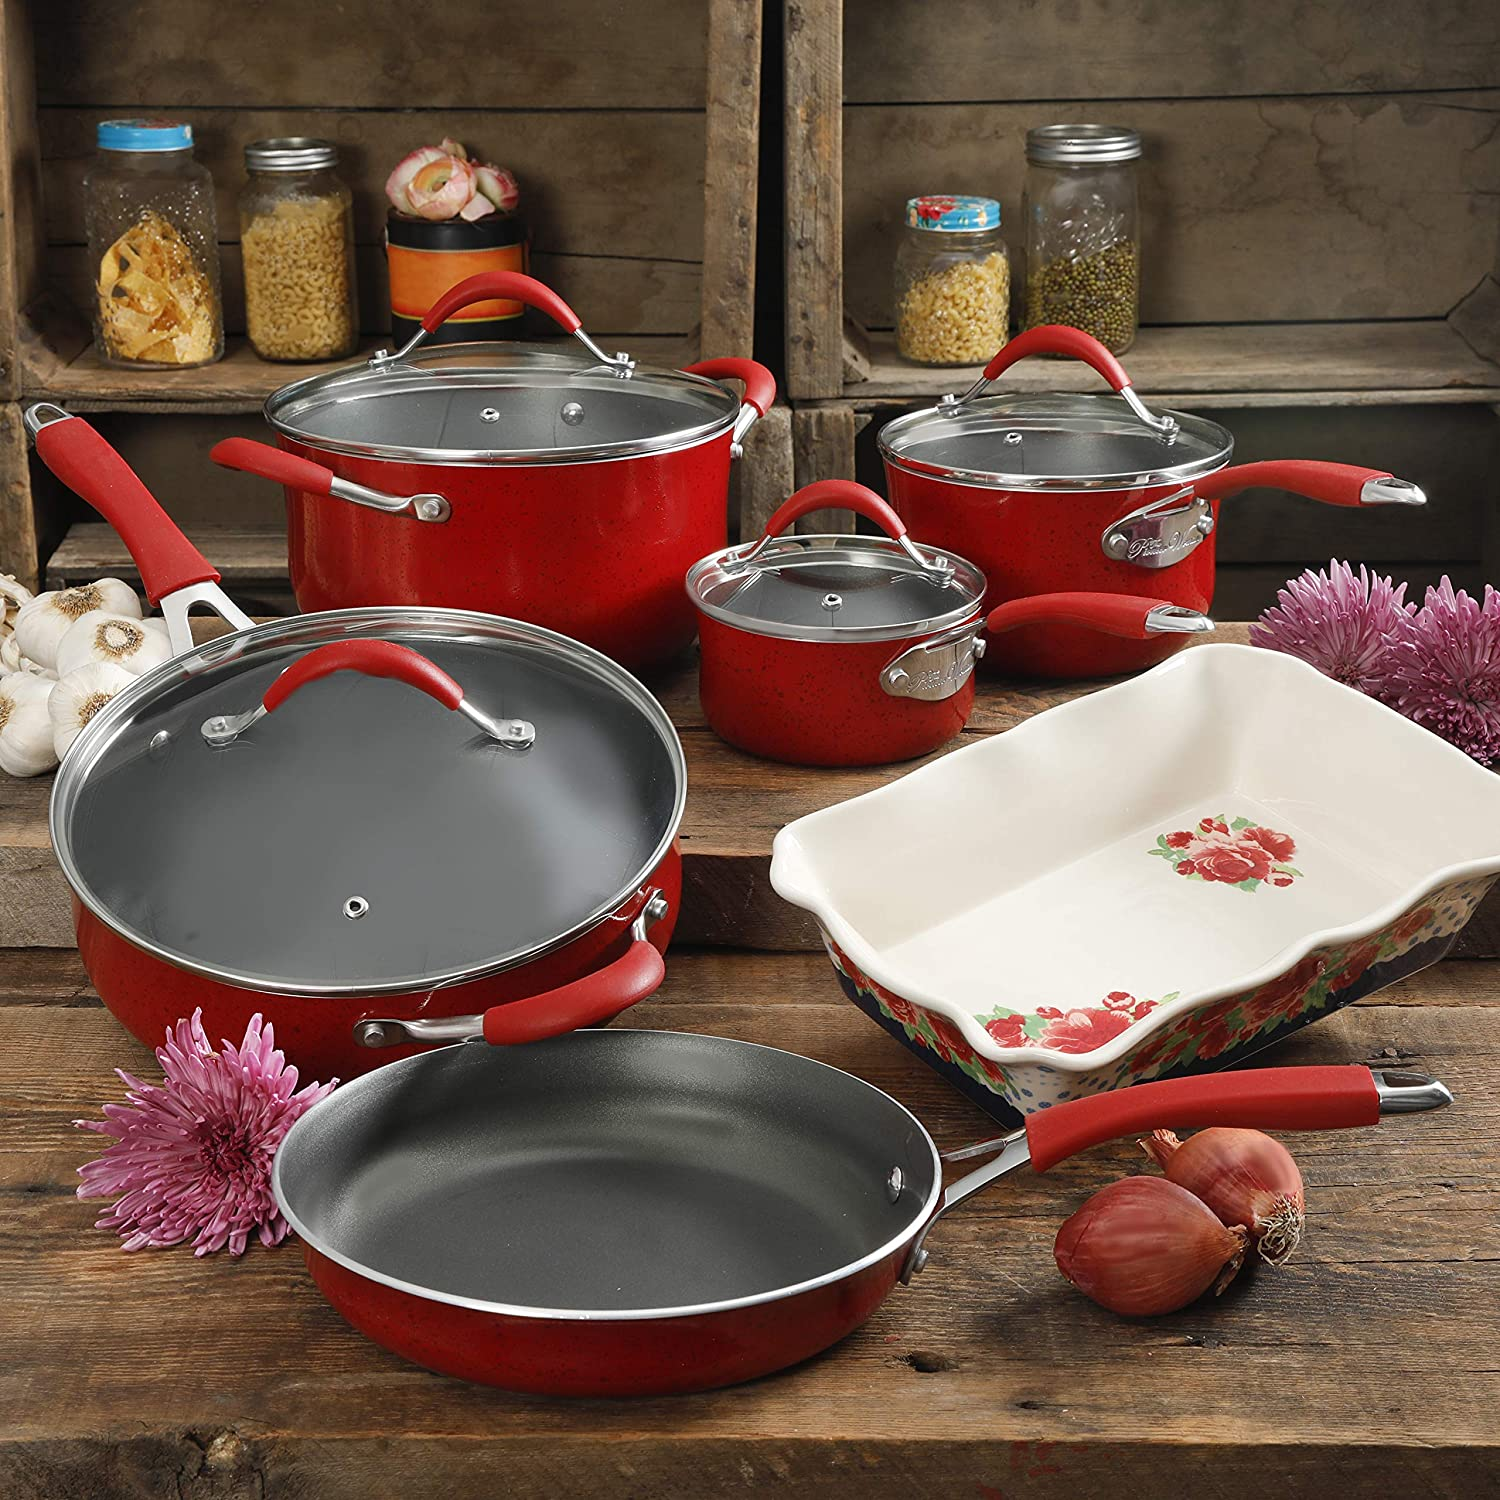 Amazon Com The Pioneer Woman Vintage Speckle 10 Piece Non Stick Pre Seasoned Cookware Set Red Home Kitchen